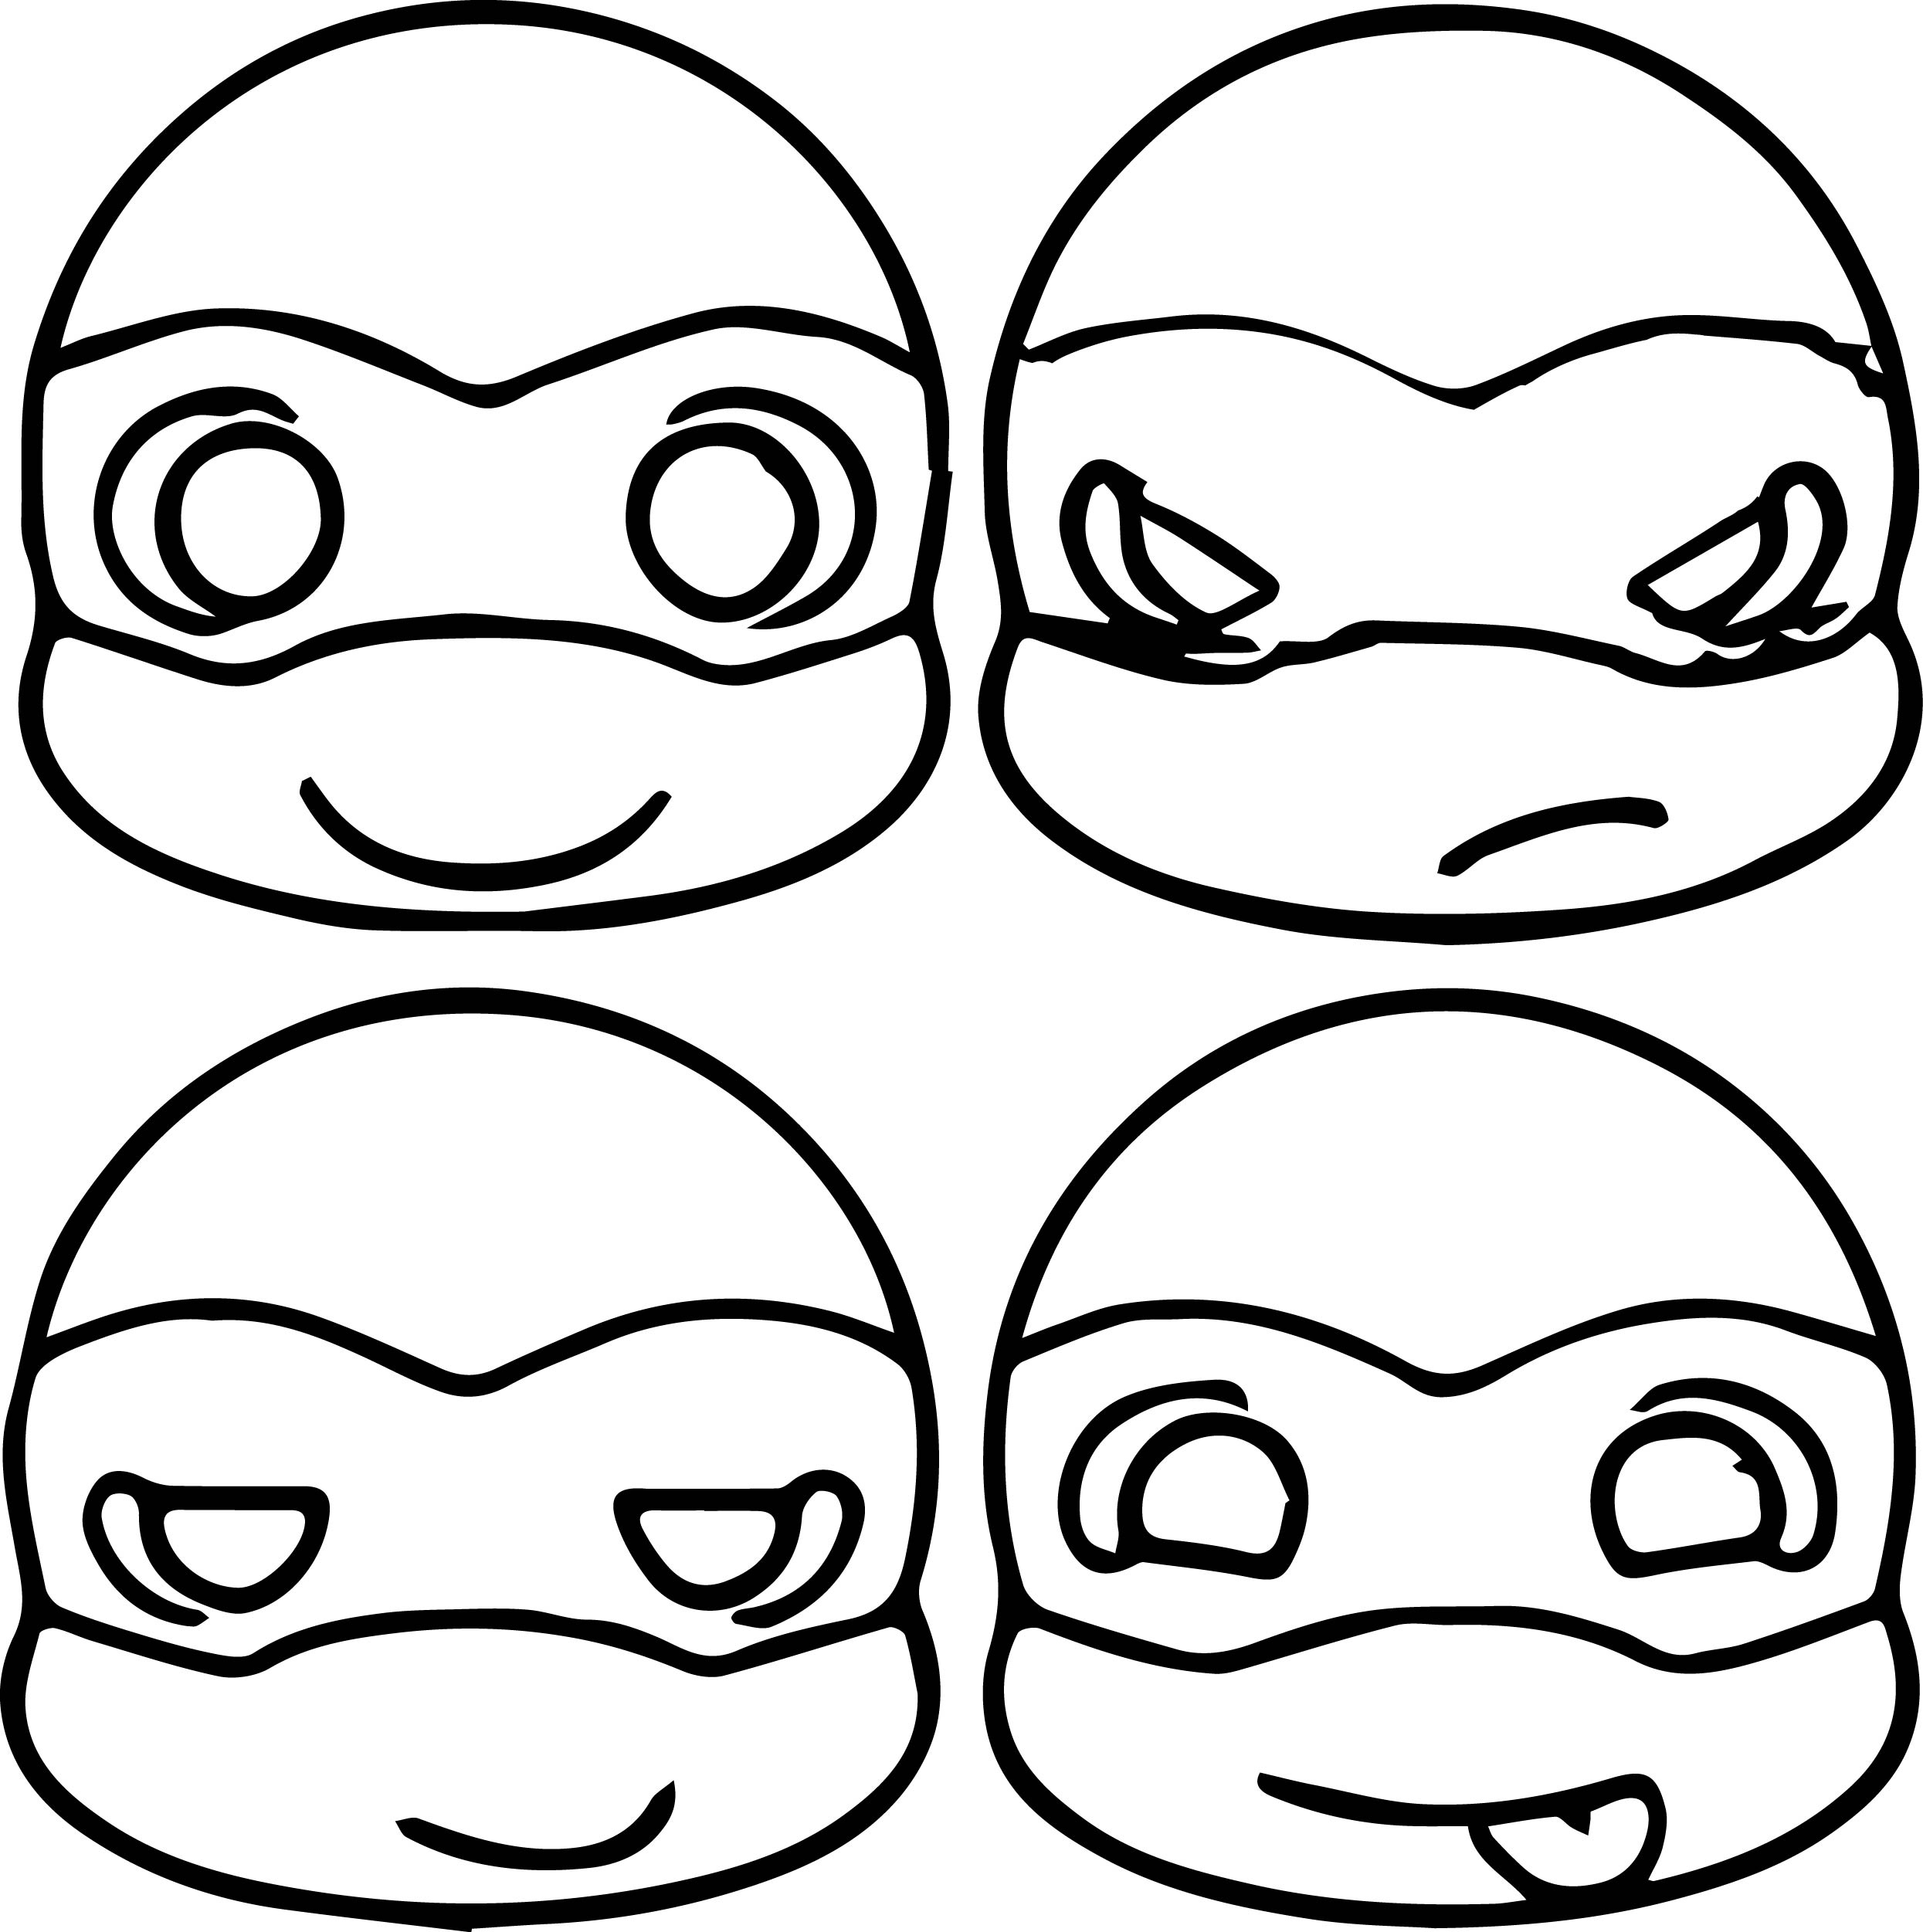 ninja turtles coloring pictures ninja turtle coloring pages free printable pictures ninja turtles coloring pictures